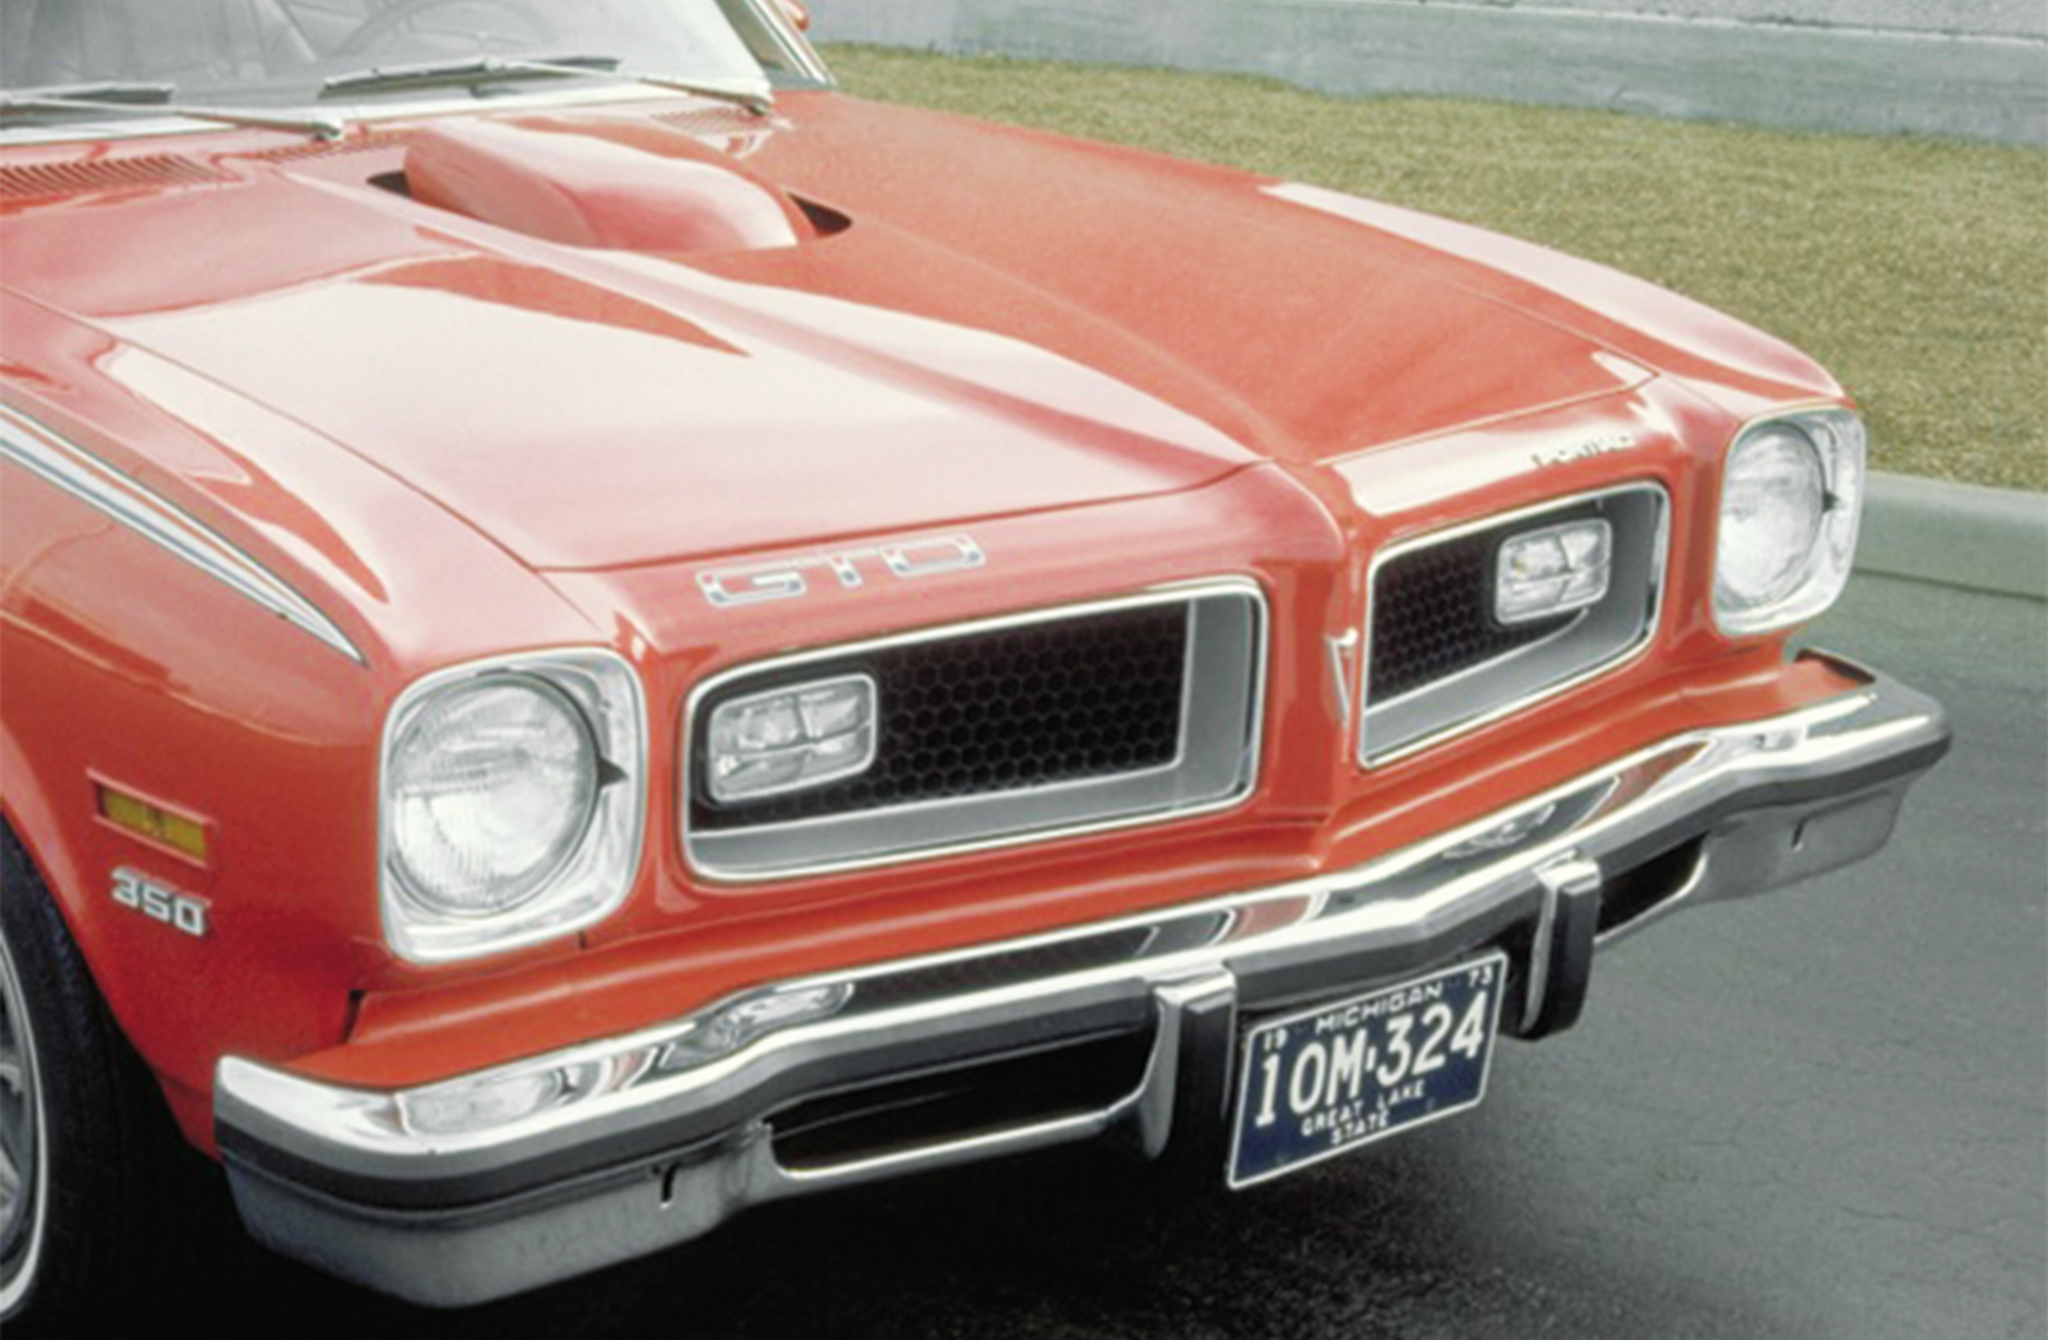 Exterior upgrades from the standard Pontiac Ventura included 1966 Grand Prix turn signals, specific GTO striping, and a Trans Am–inspired Shaker hood. Unlike the Trans Ams, the GTO's 350 was able to pass noise standards, allowing the scoop to be functional. It was the only year the GTO had standard Ram Air.